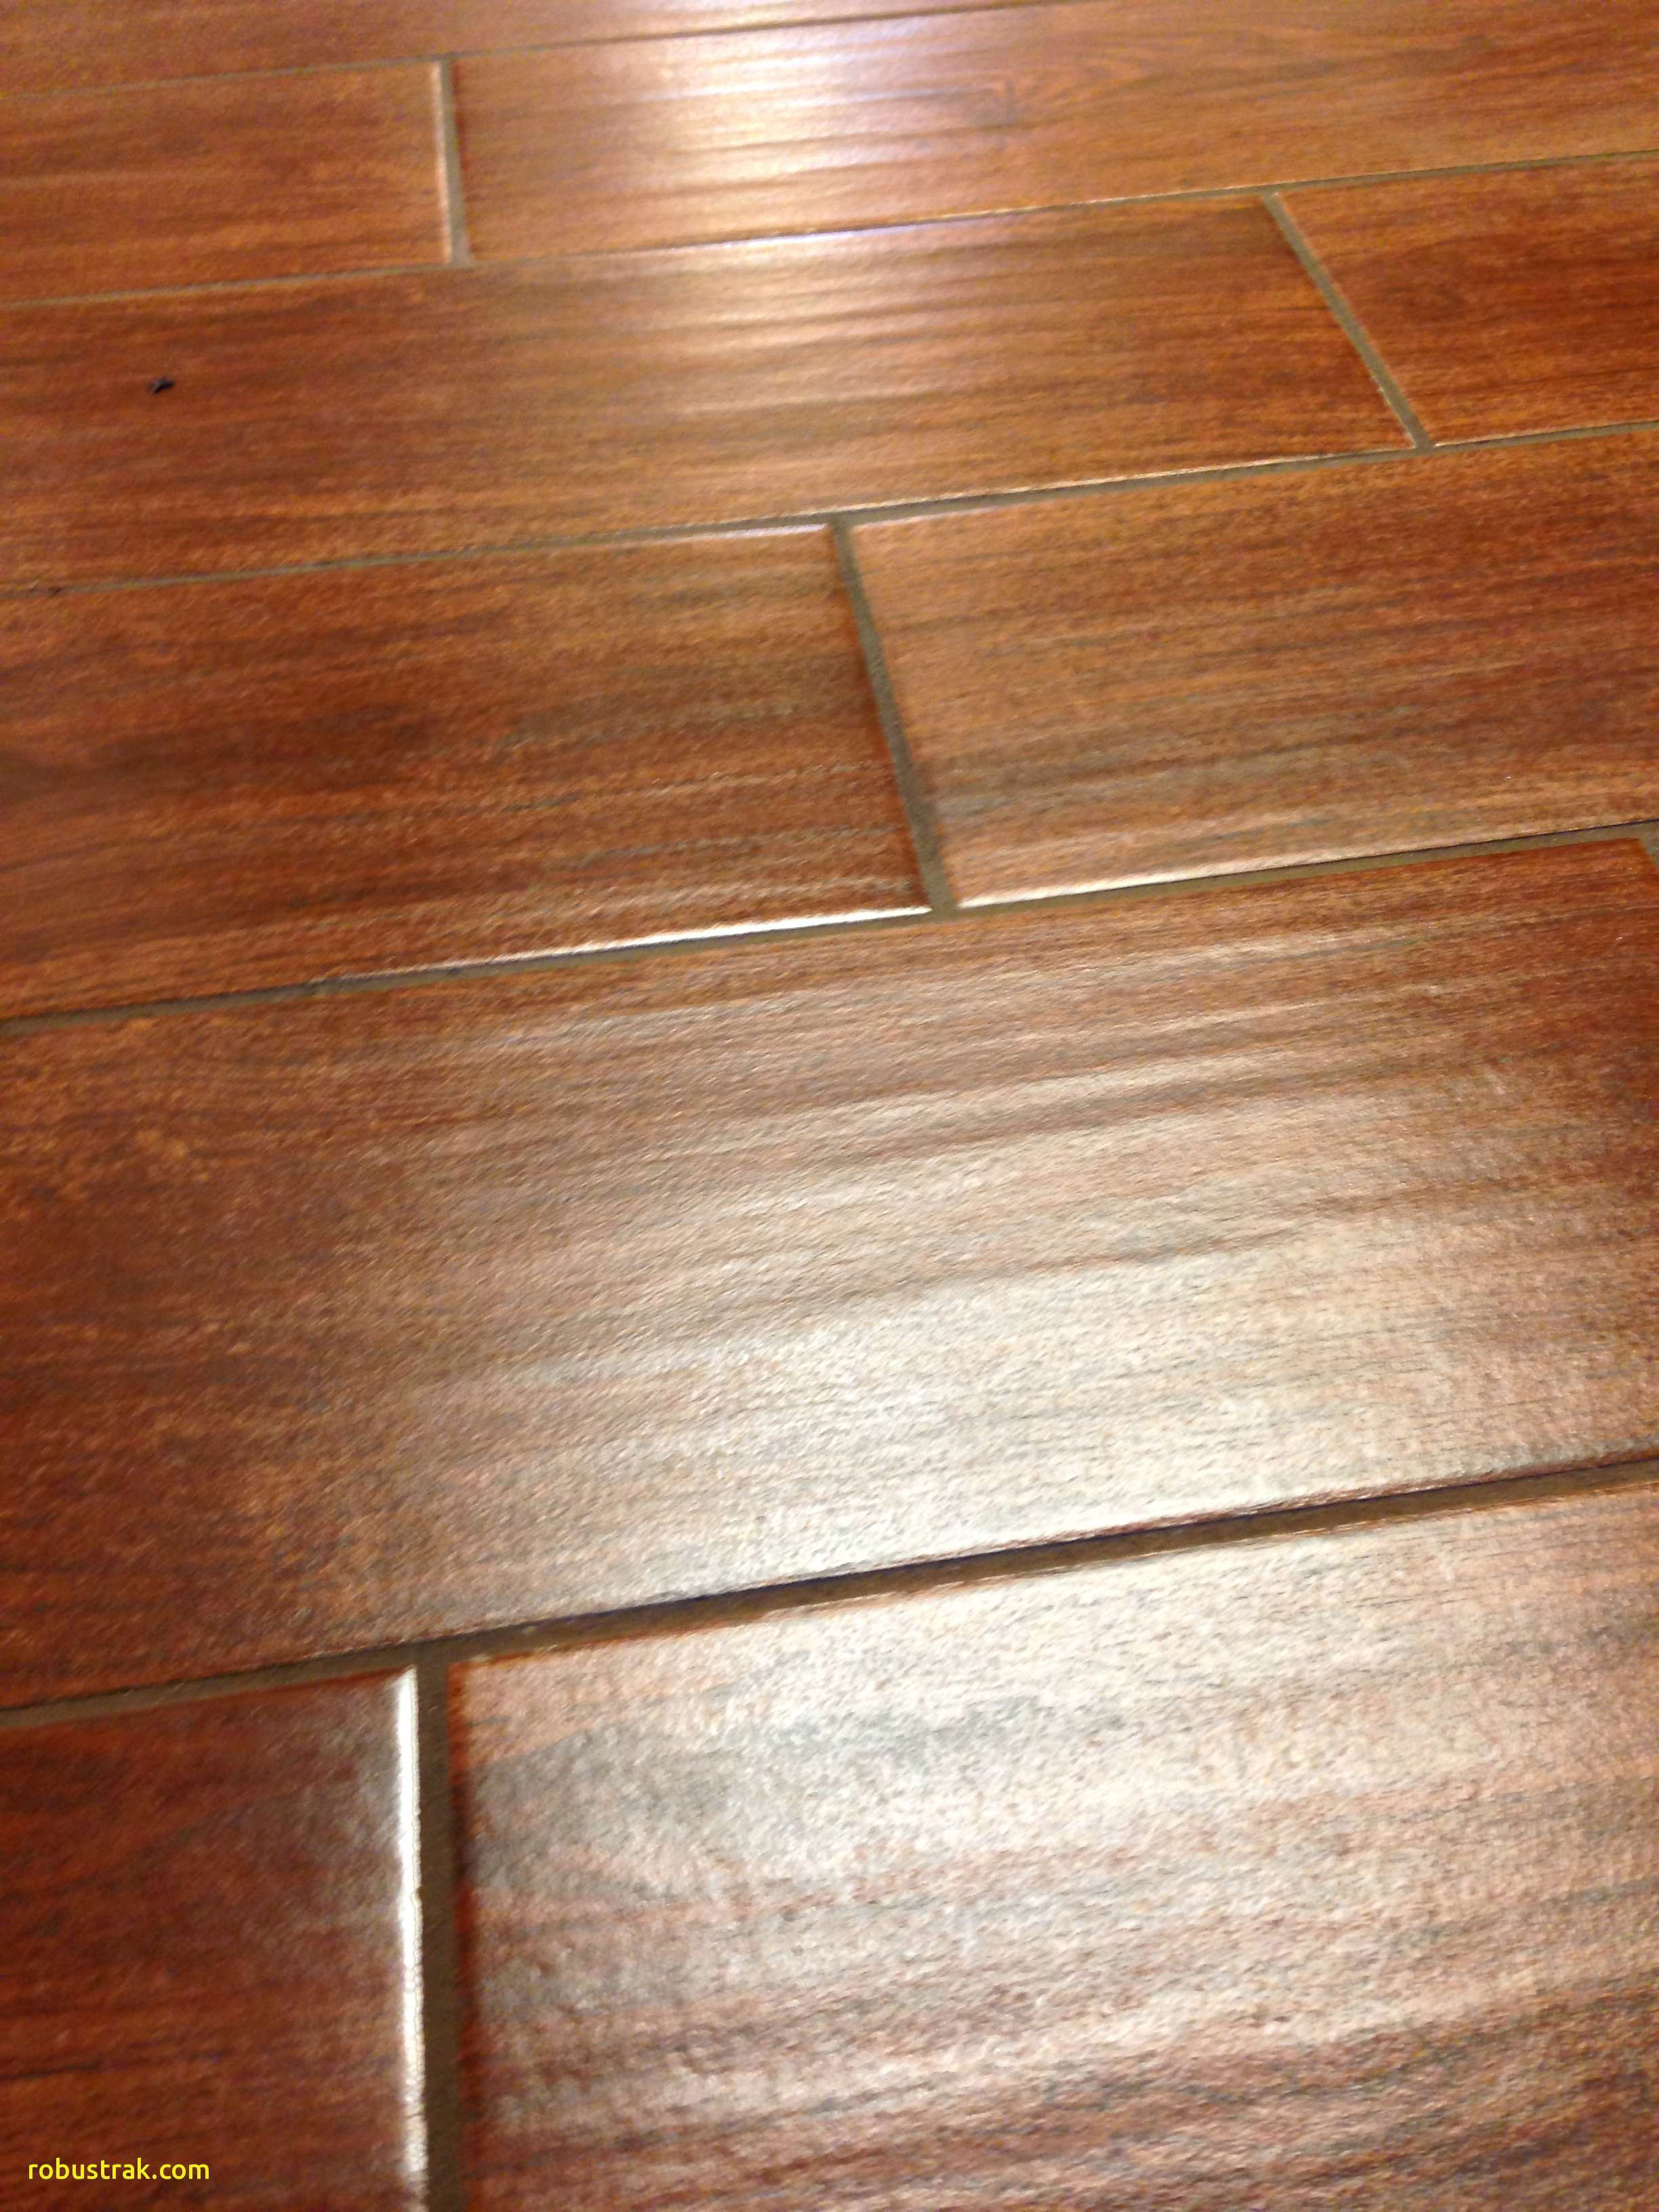 hardwood and tile flooring together of wood to tile transition strips best of flooring wooden floor tiles throughout wood to tile transition strips best of flooring wooden floor tiles priceod in india flooring tile